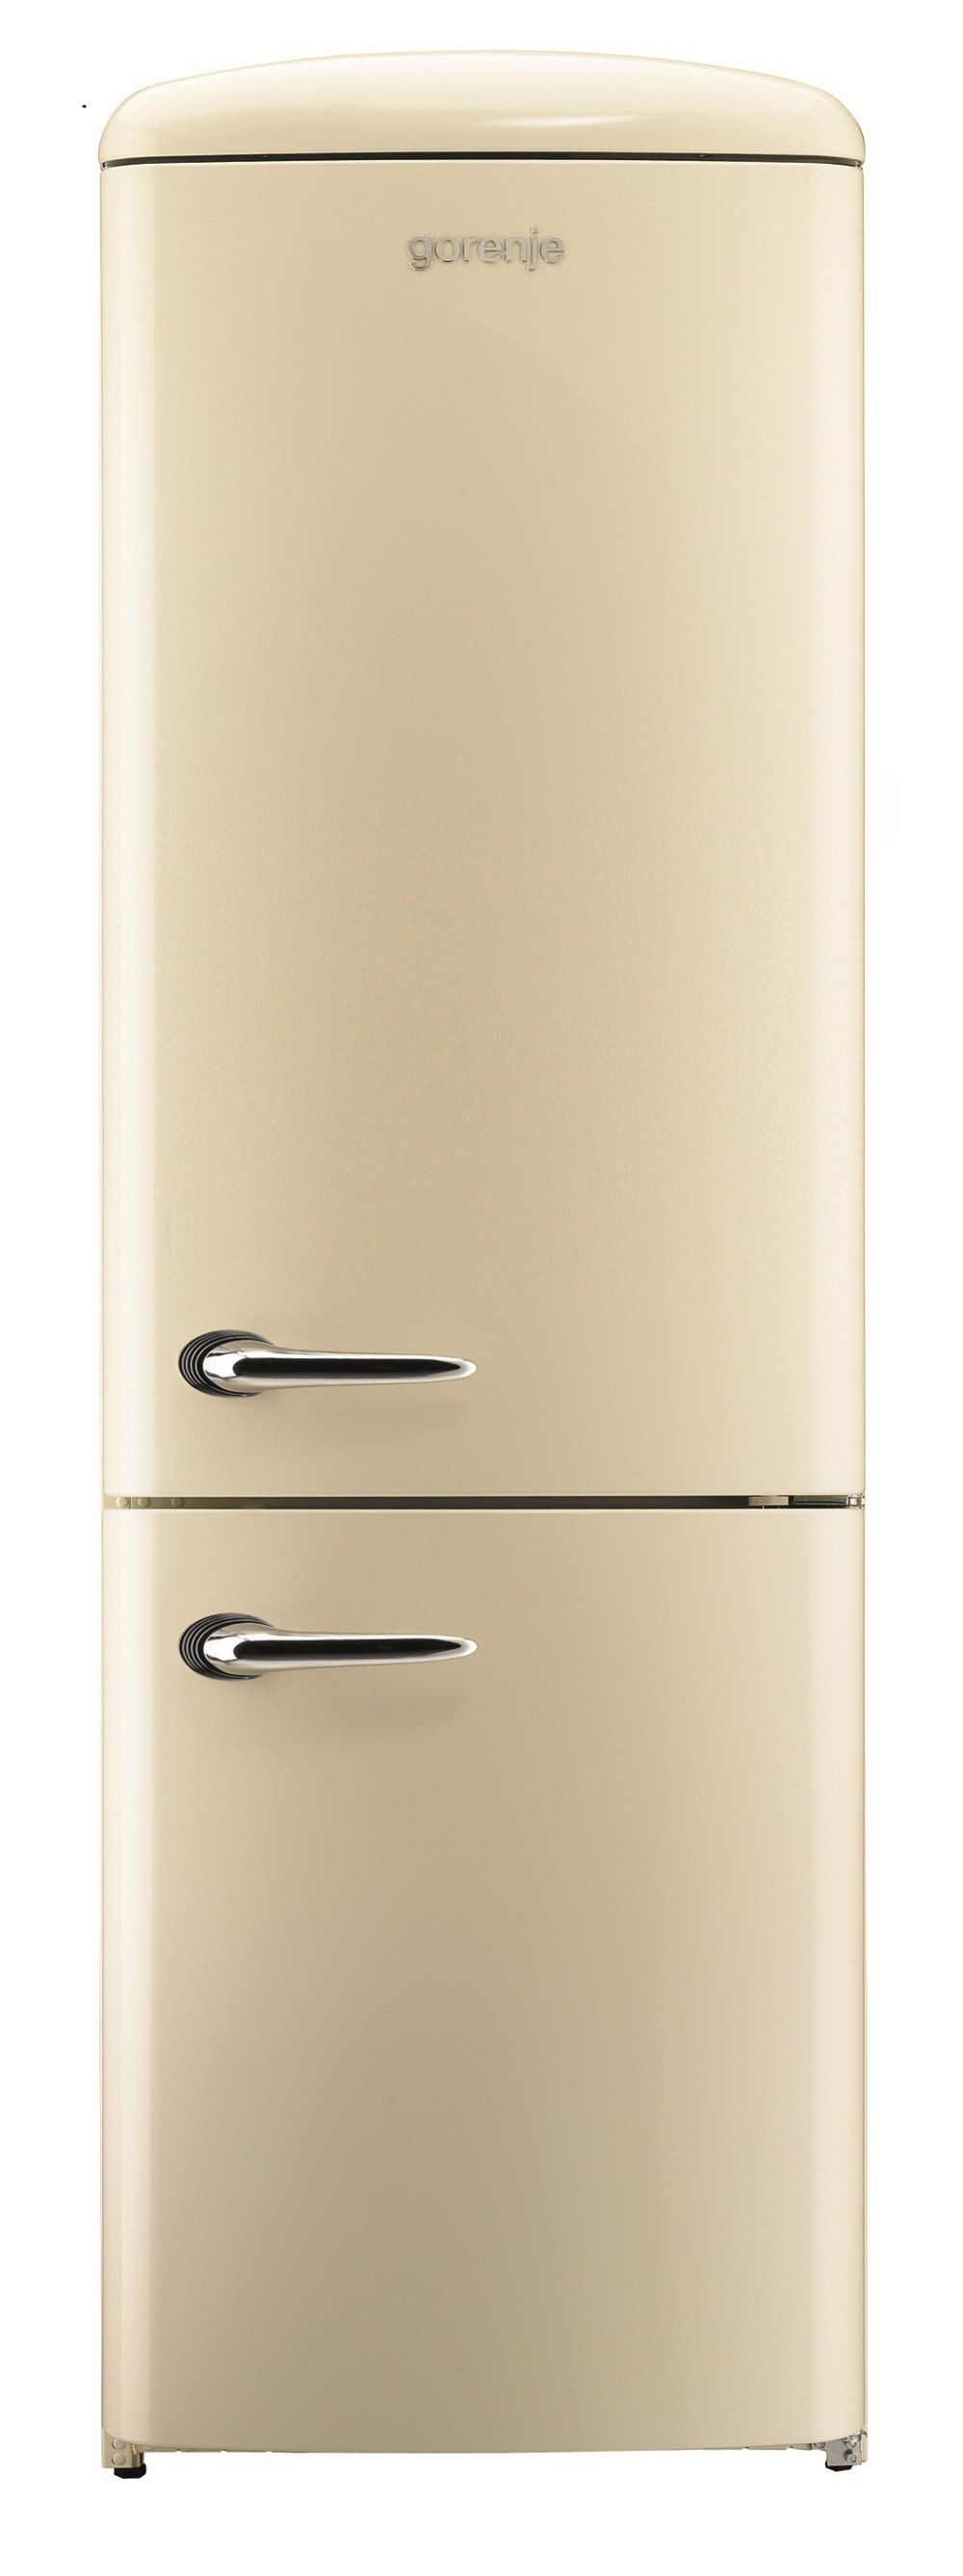 Mid Century Modern Refrigerator 1950 By Northstar I Really Like It But I D Rather Have A Rea Retro Kitchen Appliances Retro Refrigerator Vintage Refrigerator